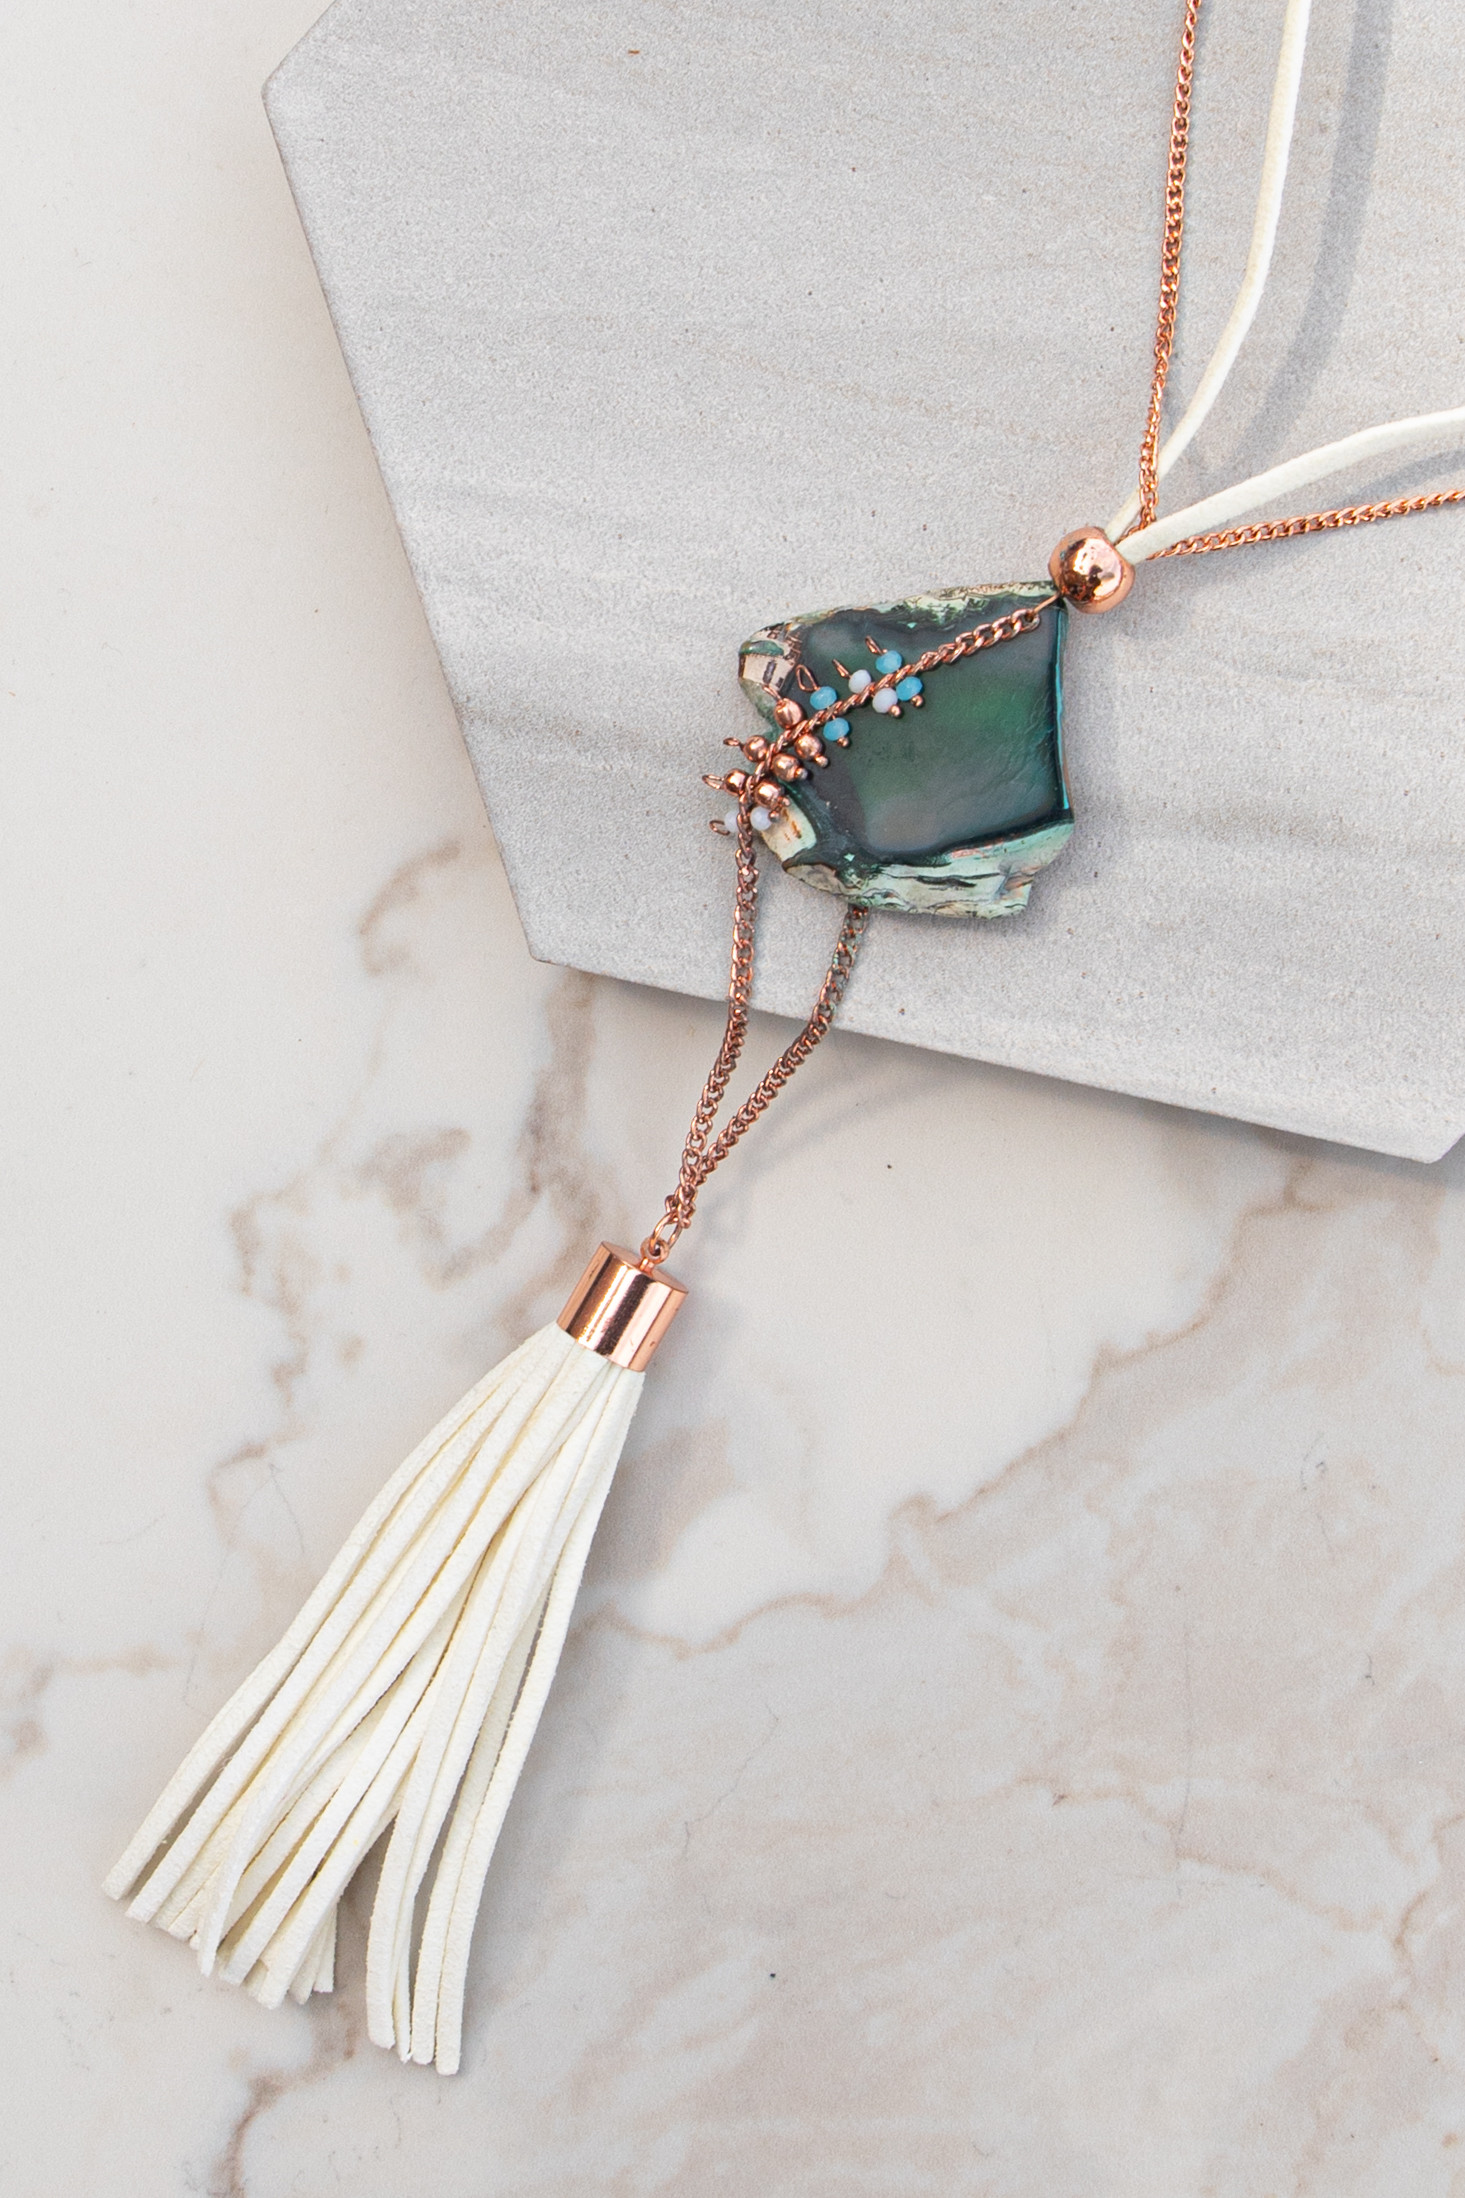 Rose Gold Necklace with Leather Tassel and Stone Pendants